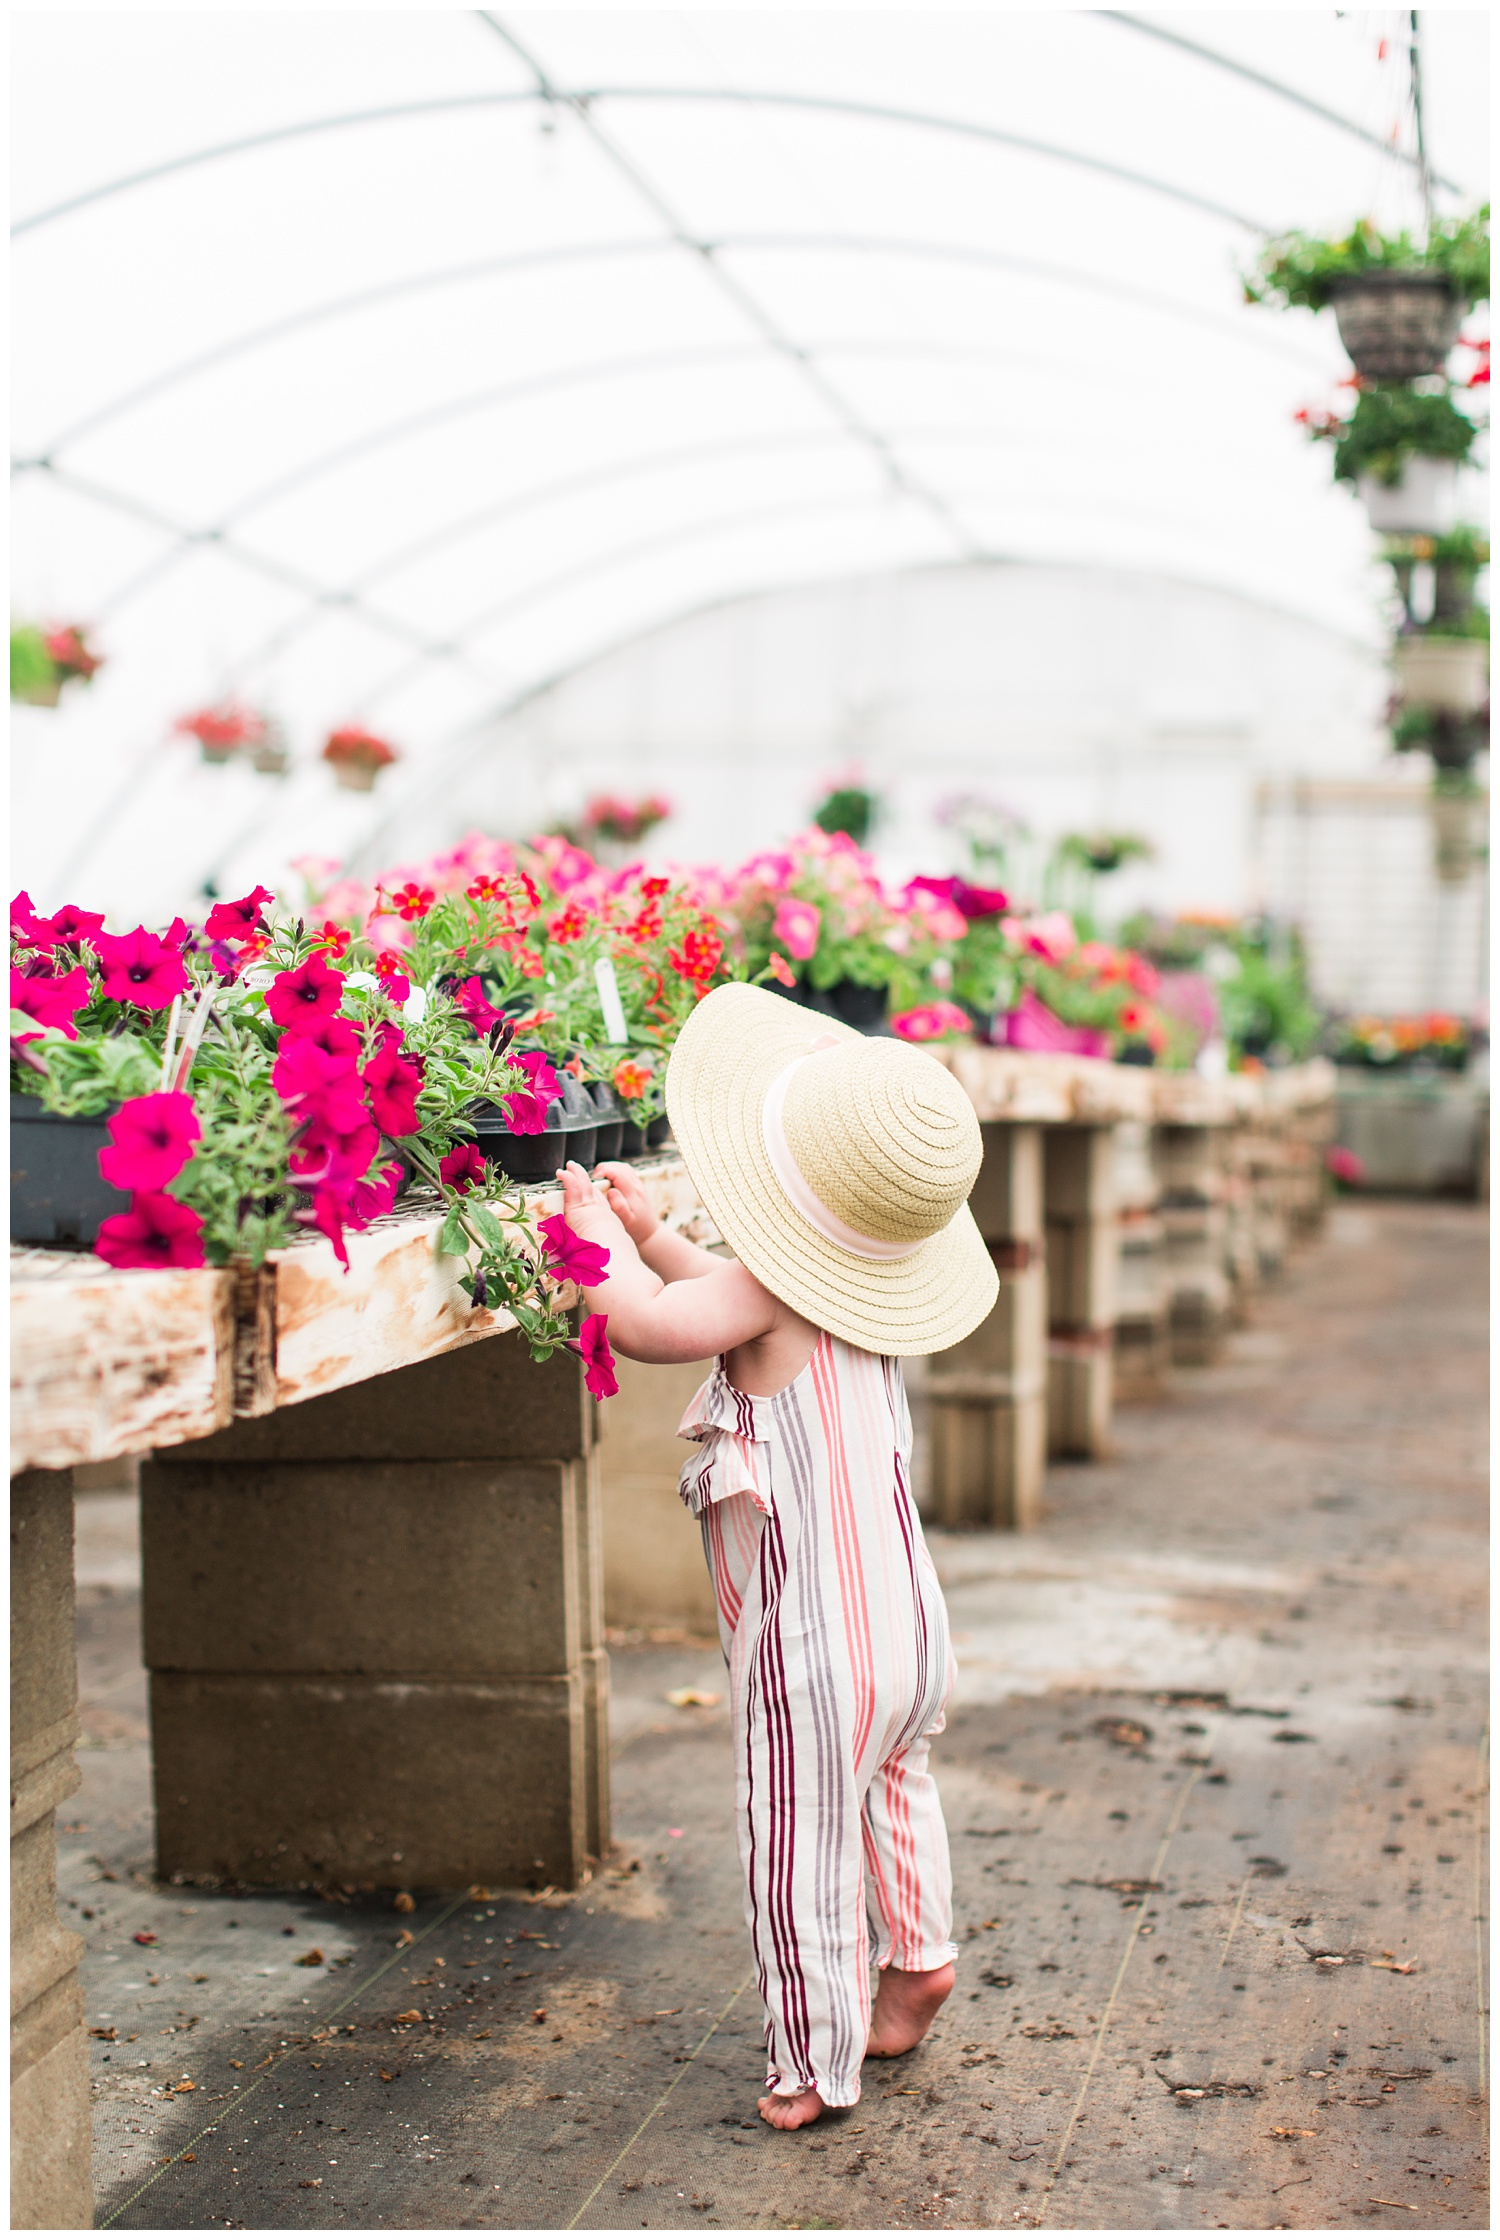 Baby Ivy standing along side florals in a greenhouse wearing a fun floppy hat.